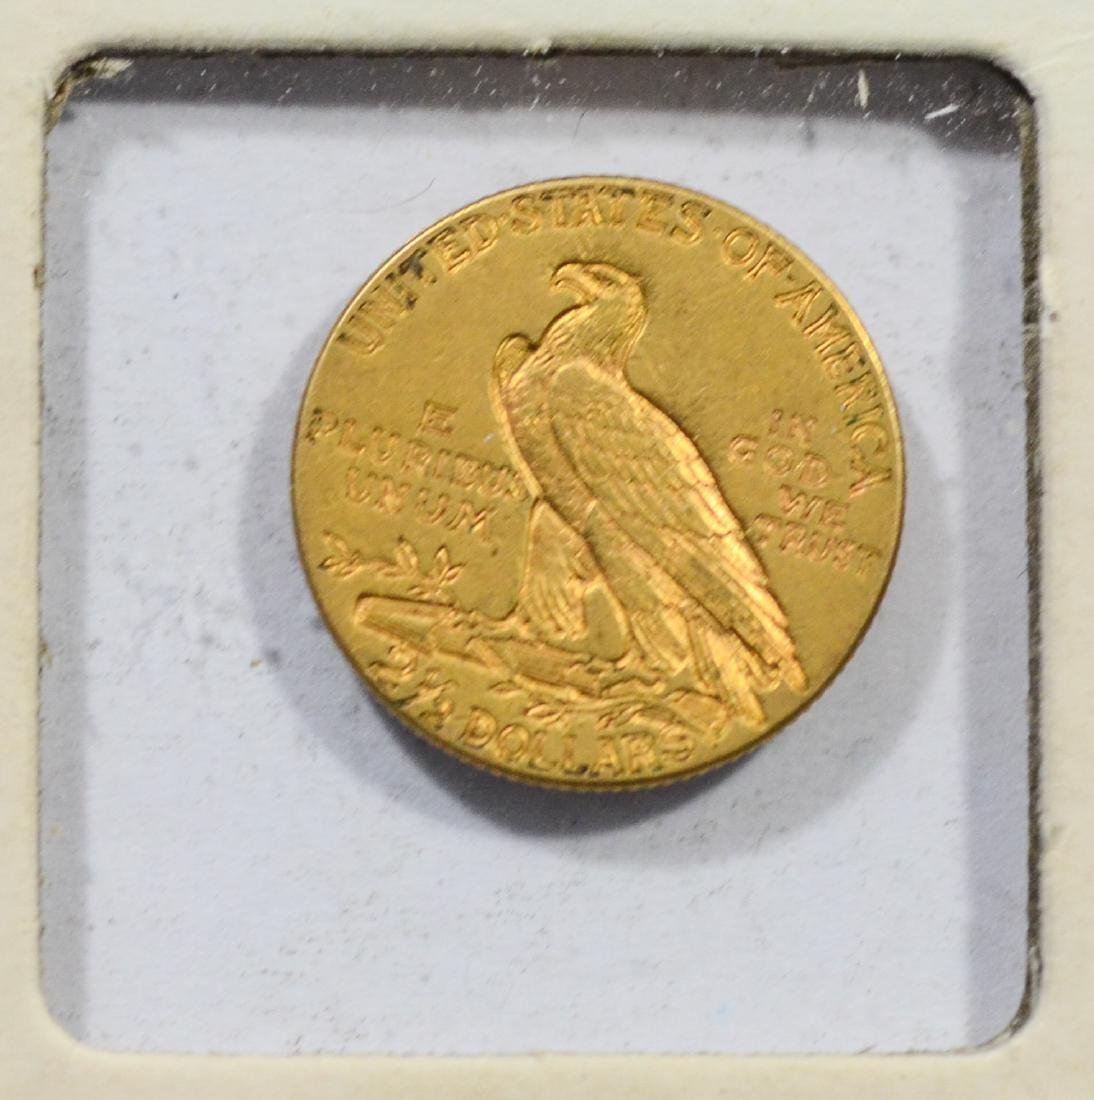 1912 $2 1/2 Indian gold coin, EF - 2